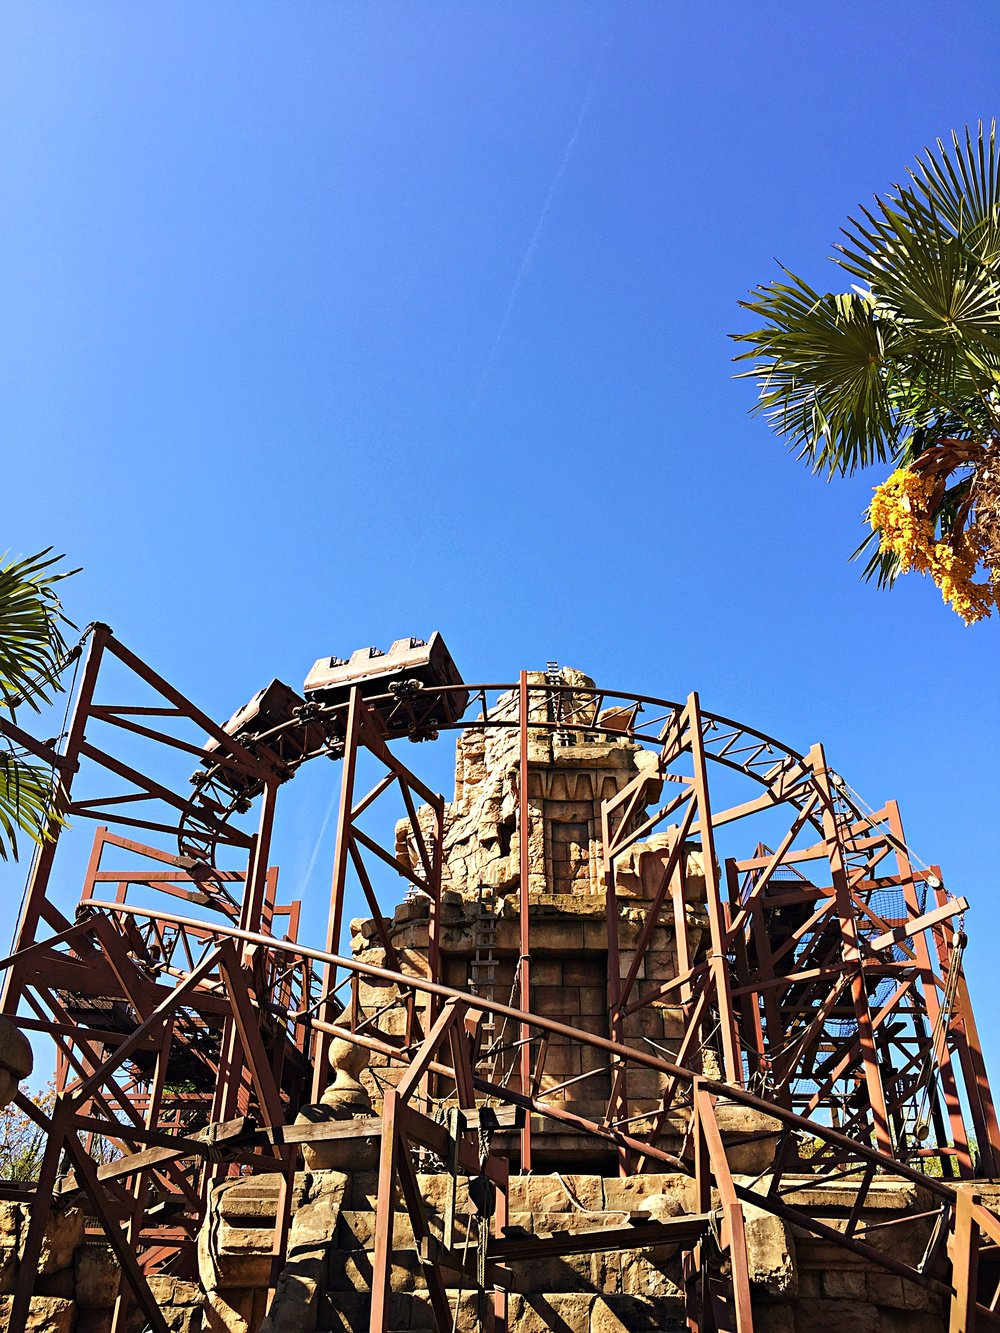 Indiana Jones roller coaster!! (Not in Fantasyland)